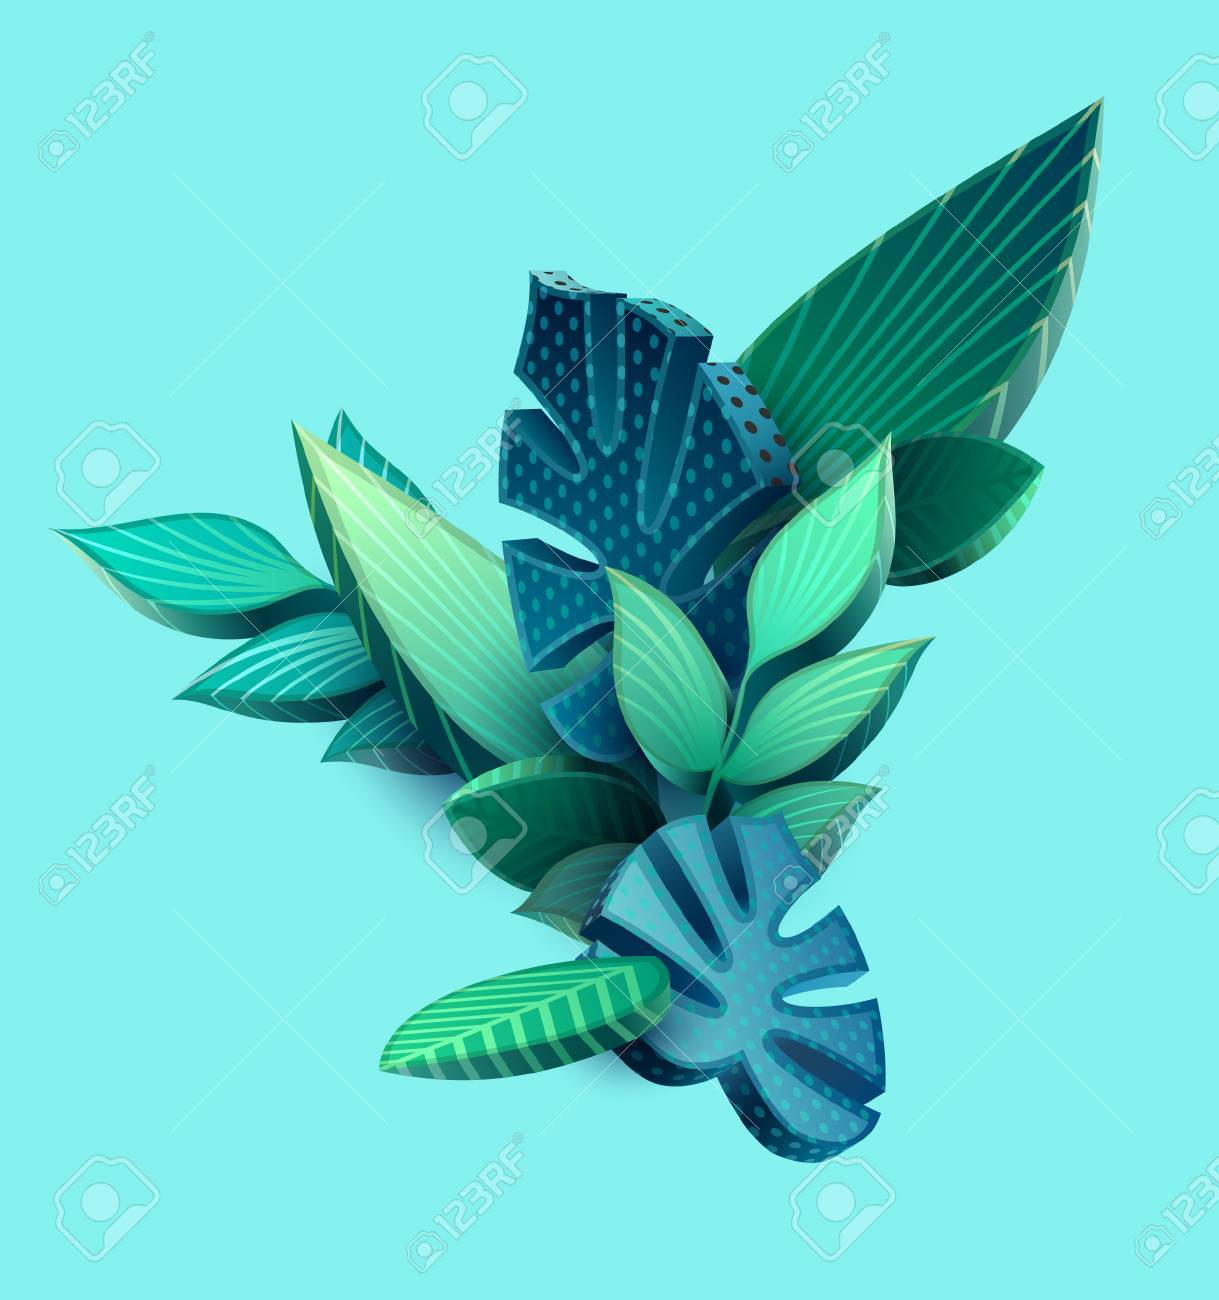 Composition of 3D stylized leaves